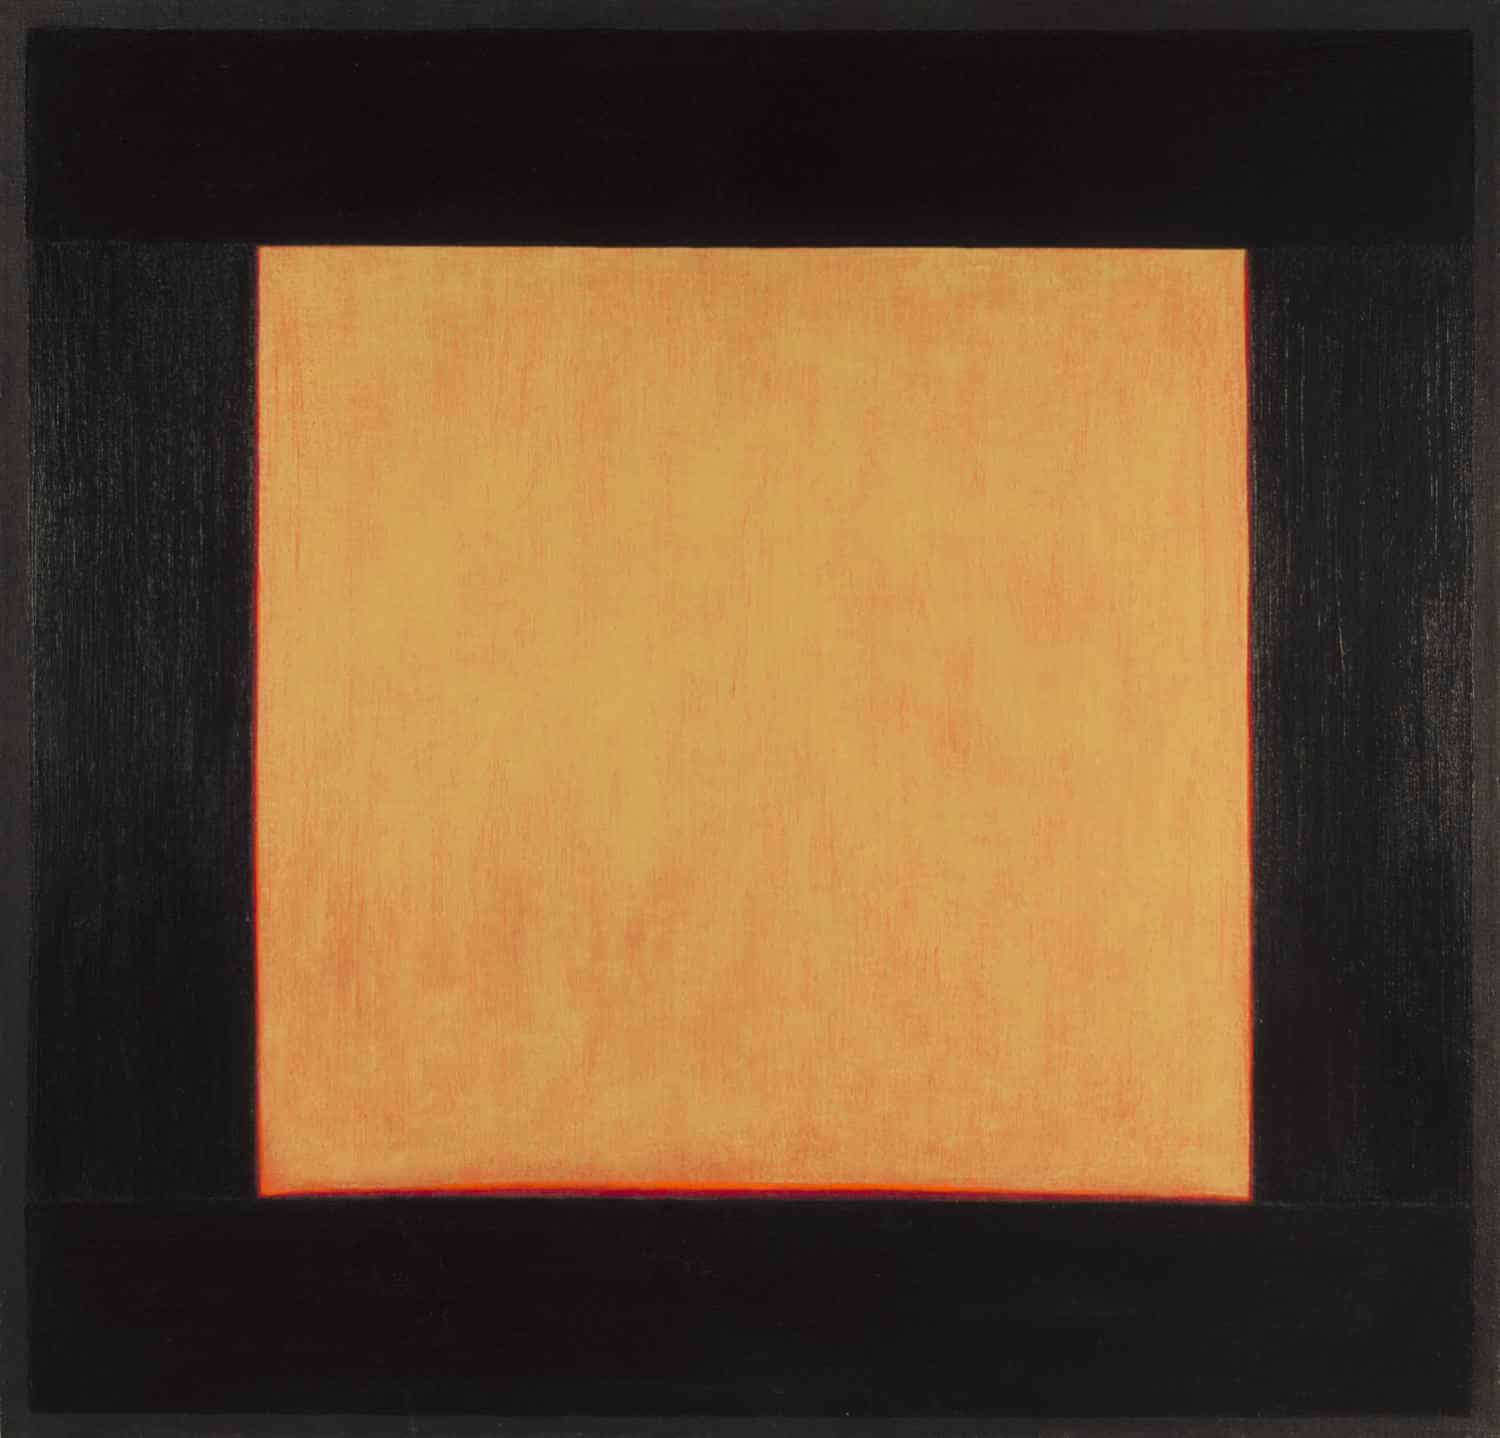 "Estio, 48x50"" acrylic on linen, 1979 - window painting by Harold Joe Waldrum"